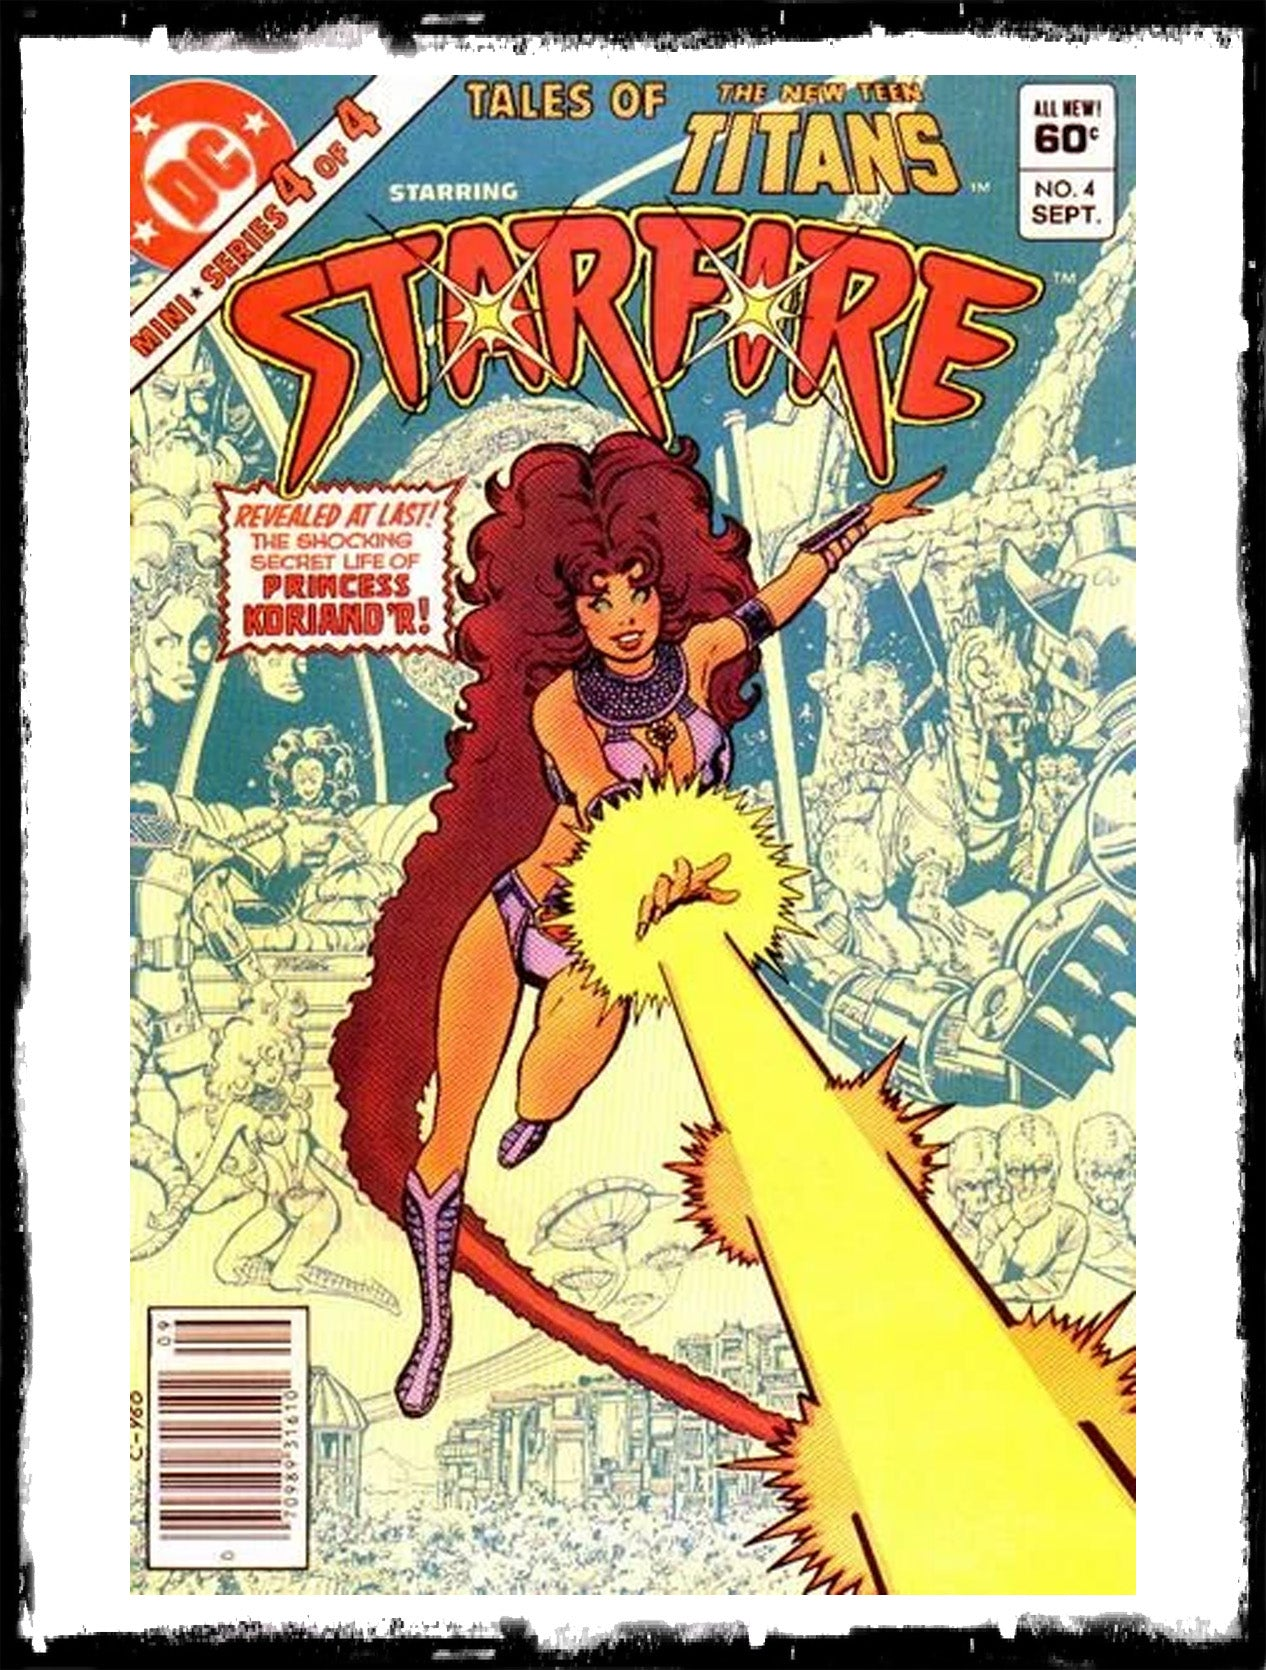 TALES OF THE NEW TEEN TITANS - #4 ORIGIN OF STARFIRE (1982 - VF+/NM-)